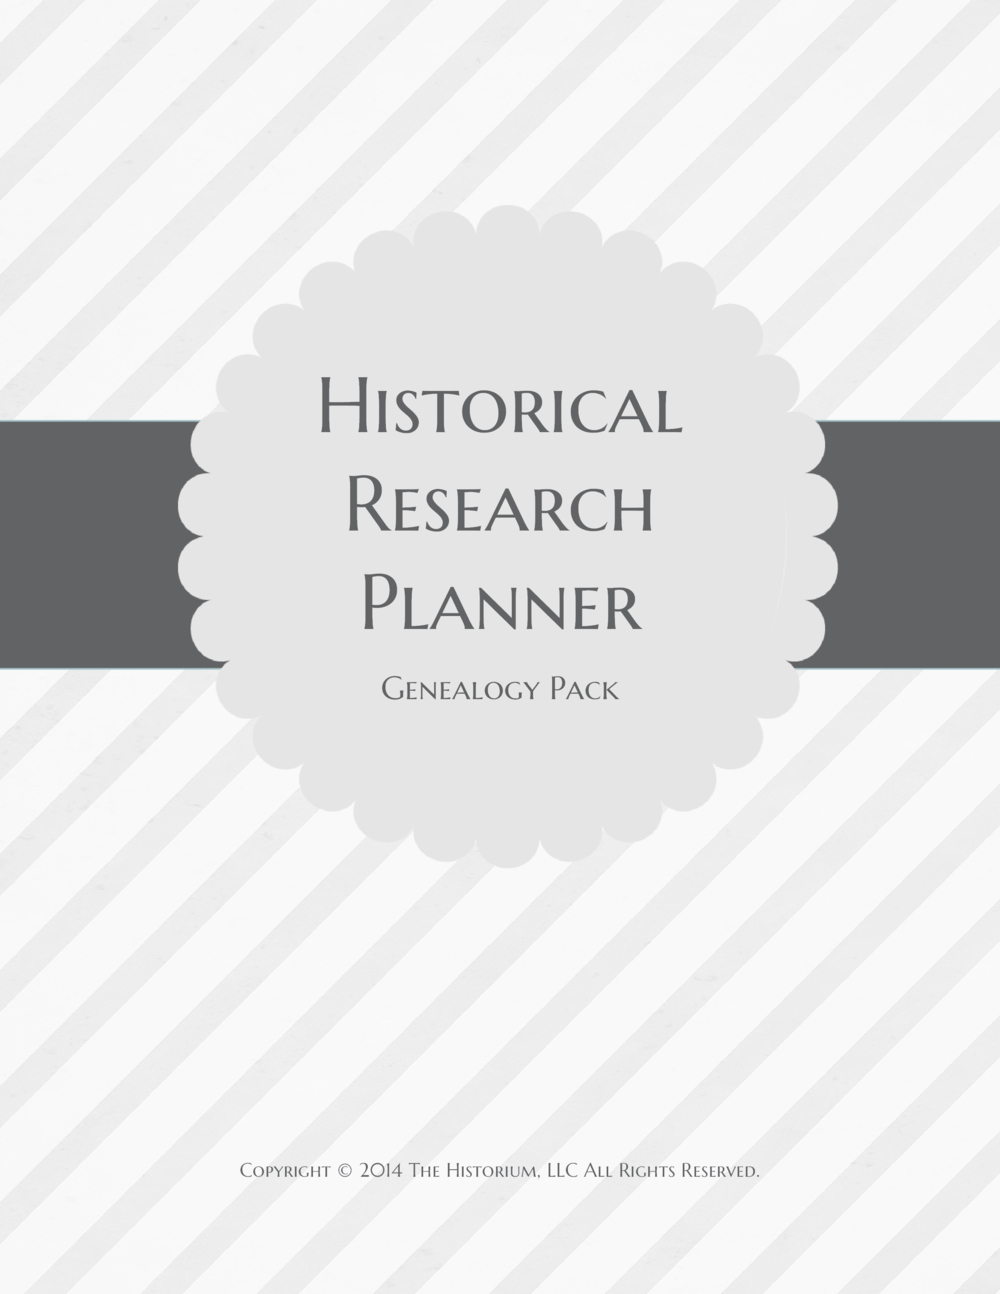 Historical Research Planner Genealogy Pack